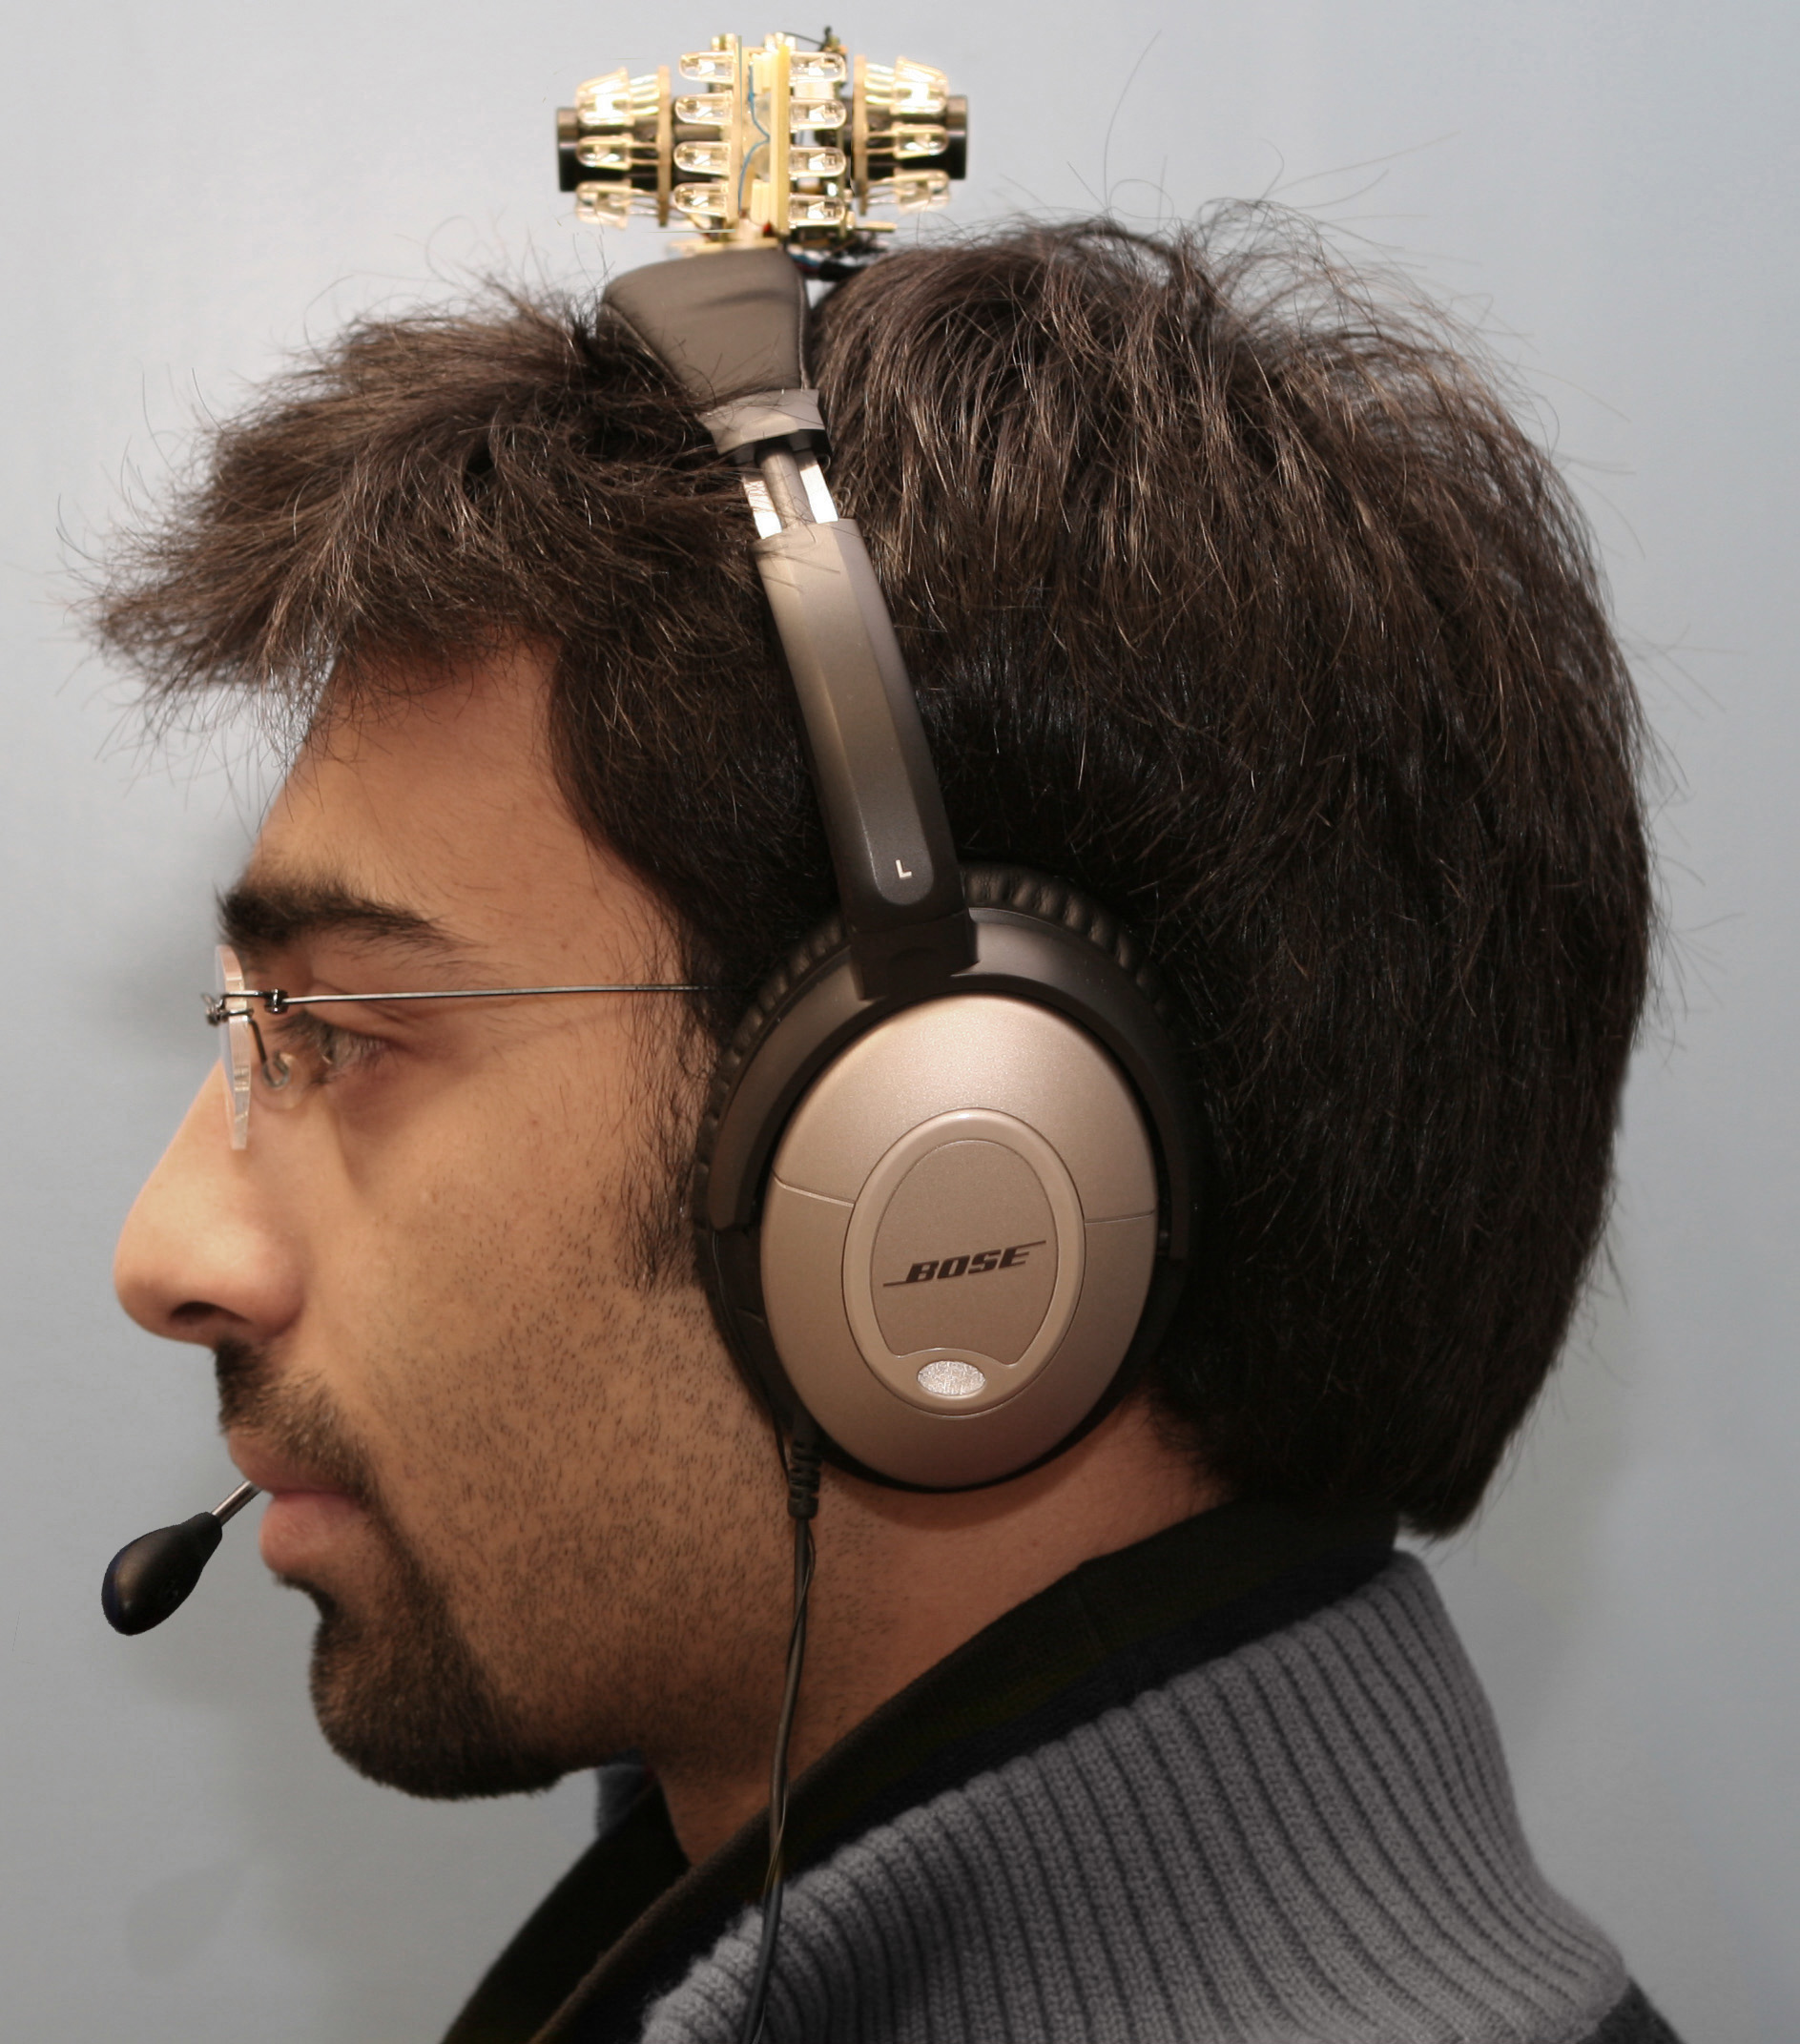 attentive headphones (2004) convey external sound upon eye contact